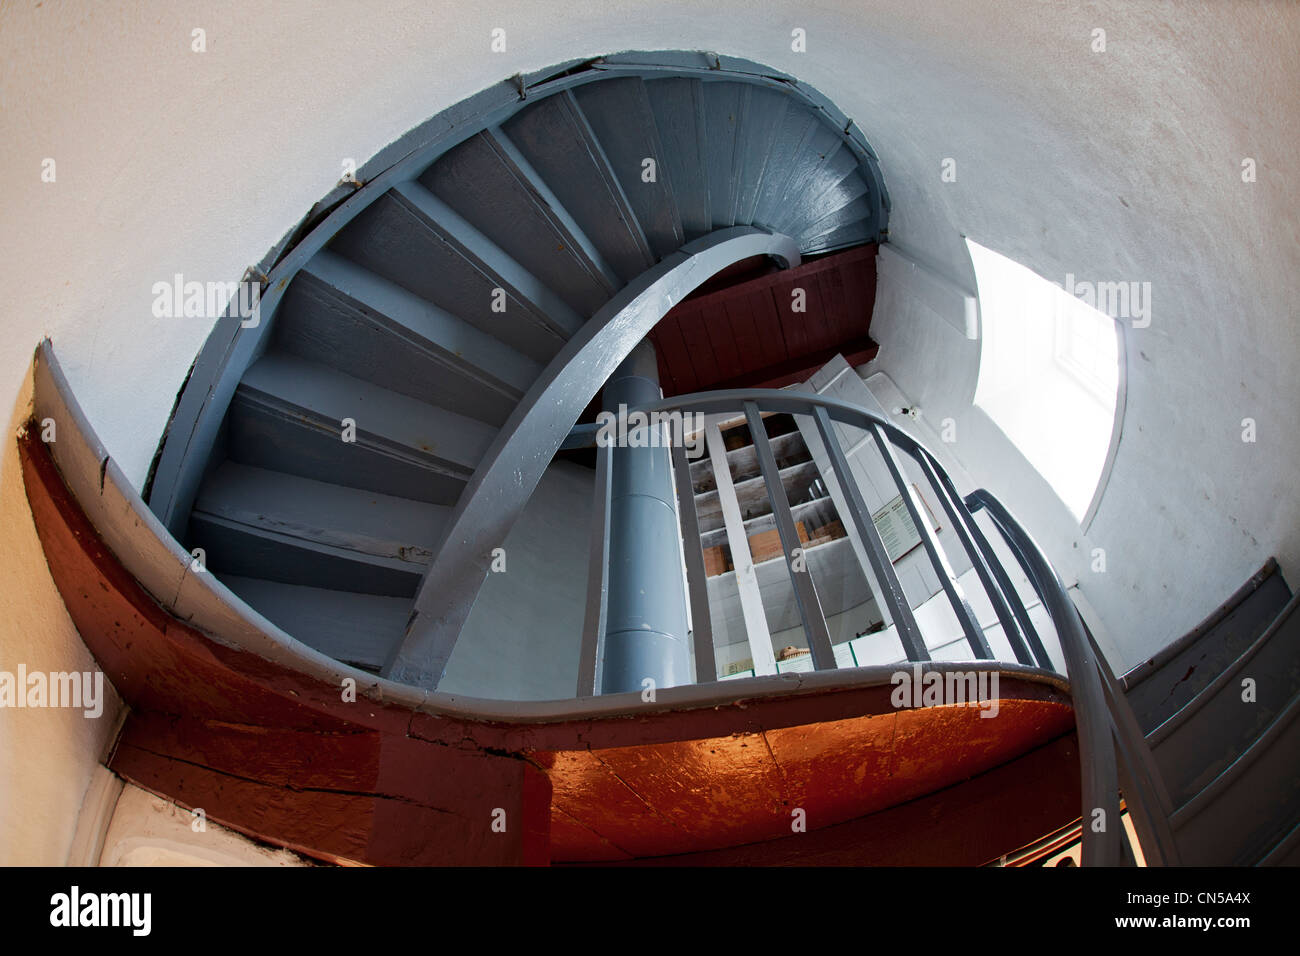 Canada, Quebec Province, Bas Saint Laurent, Ile Verte, the lighthouse, stairs - Stock Image